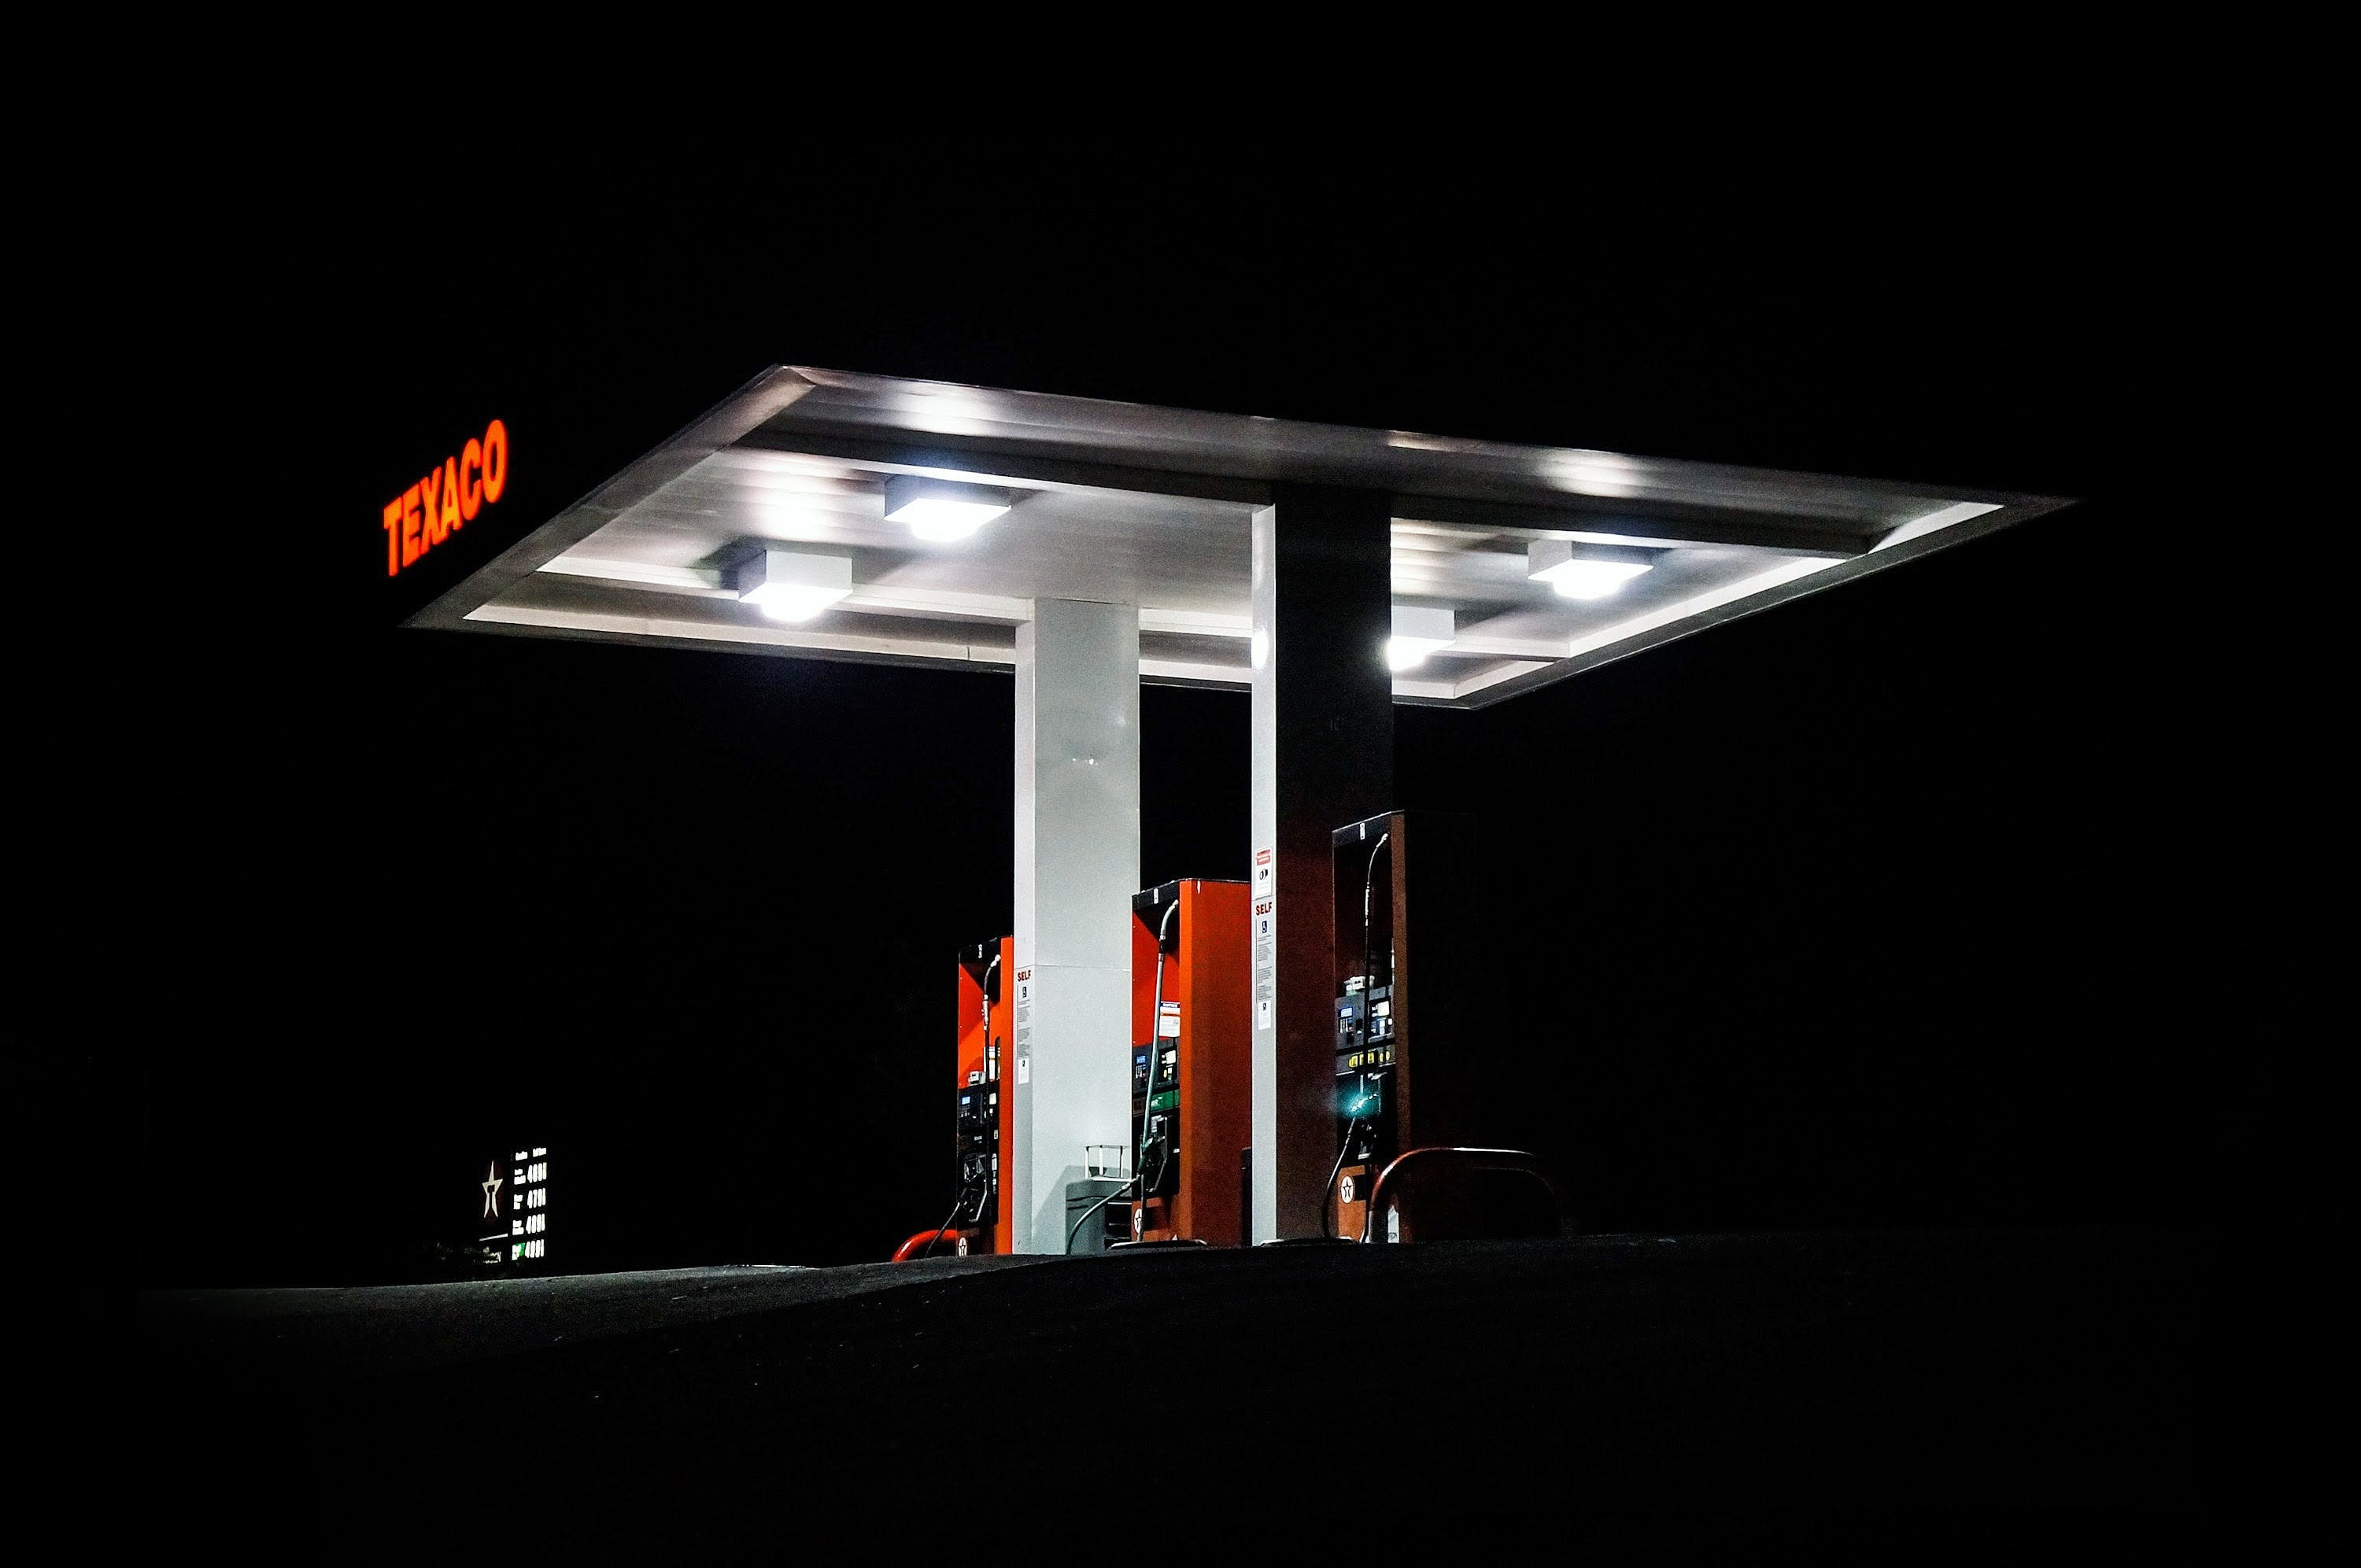 side angle photo of a texaco gas station taken at night